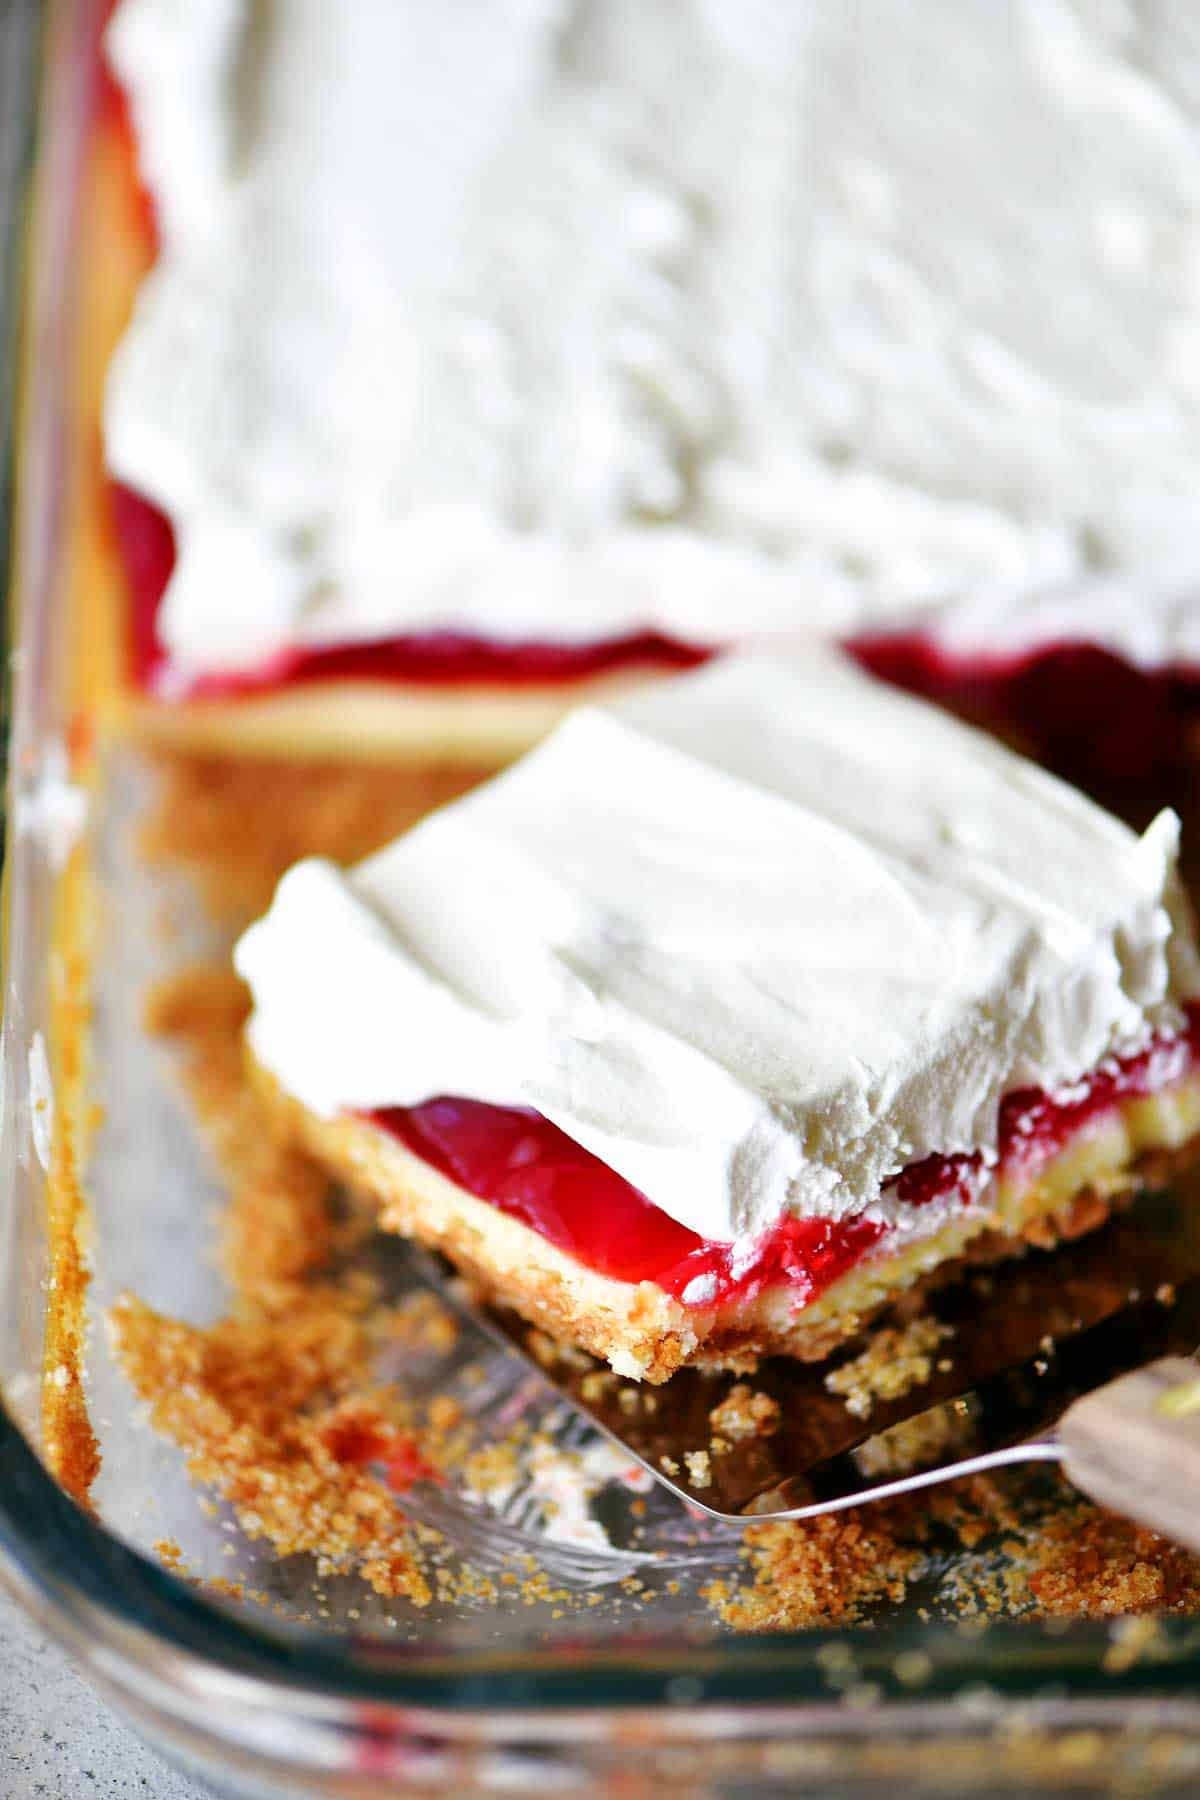 strawberry cheesecake dessert slice in pan